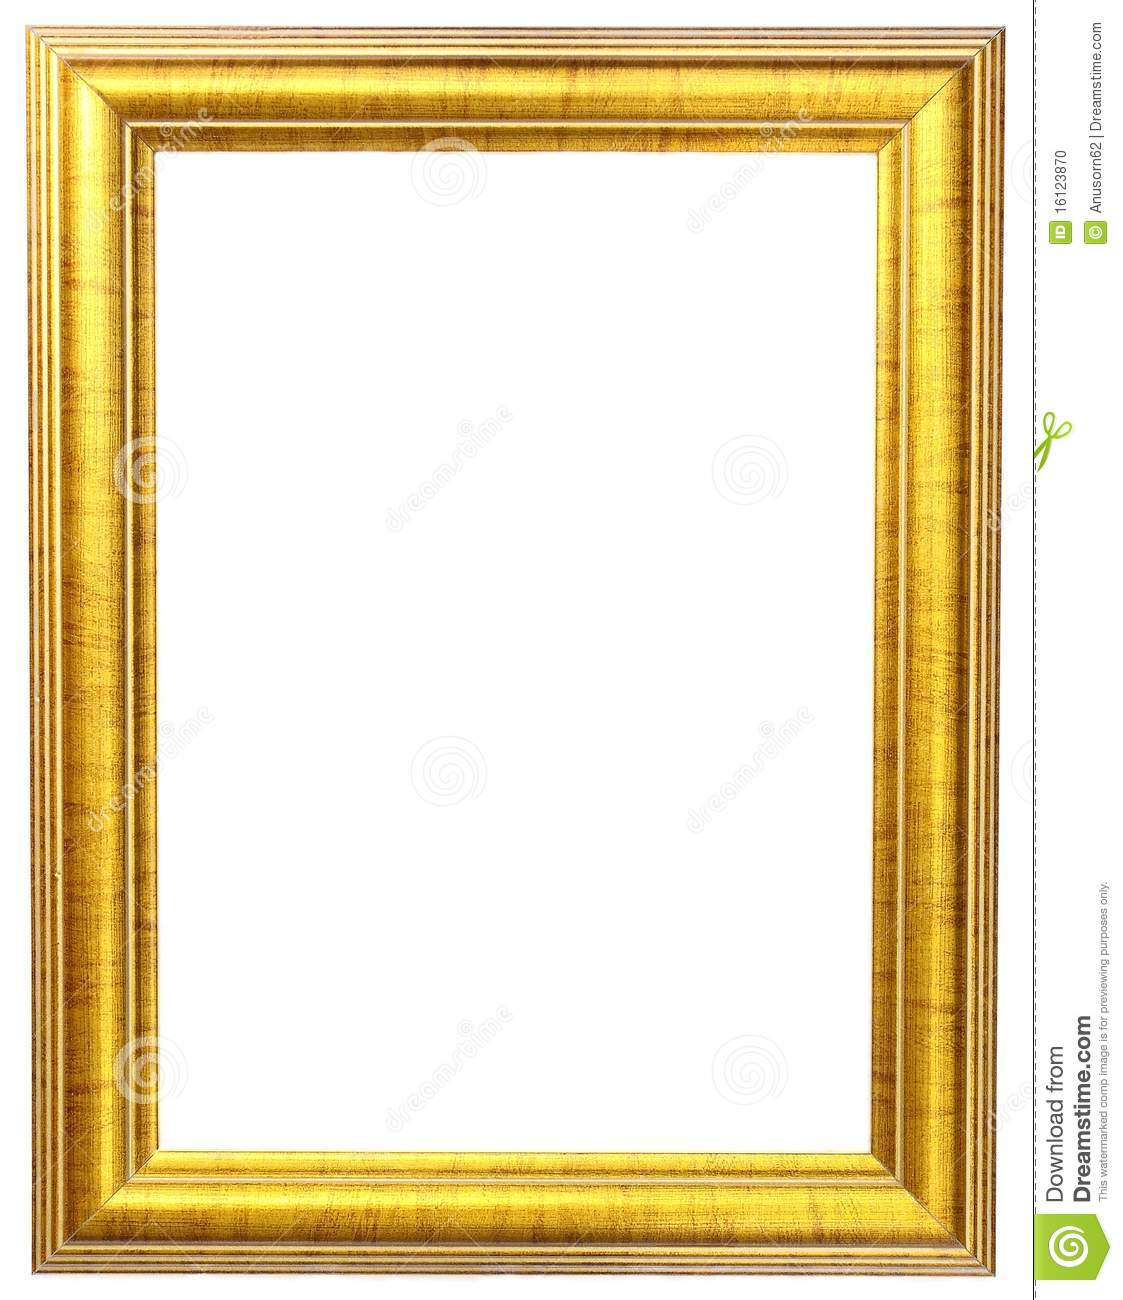 Gold picture frame stock photo. Image of golden, image - 16123870